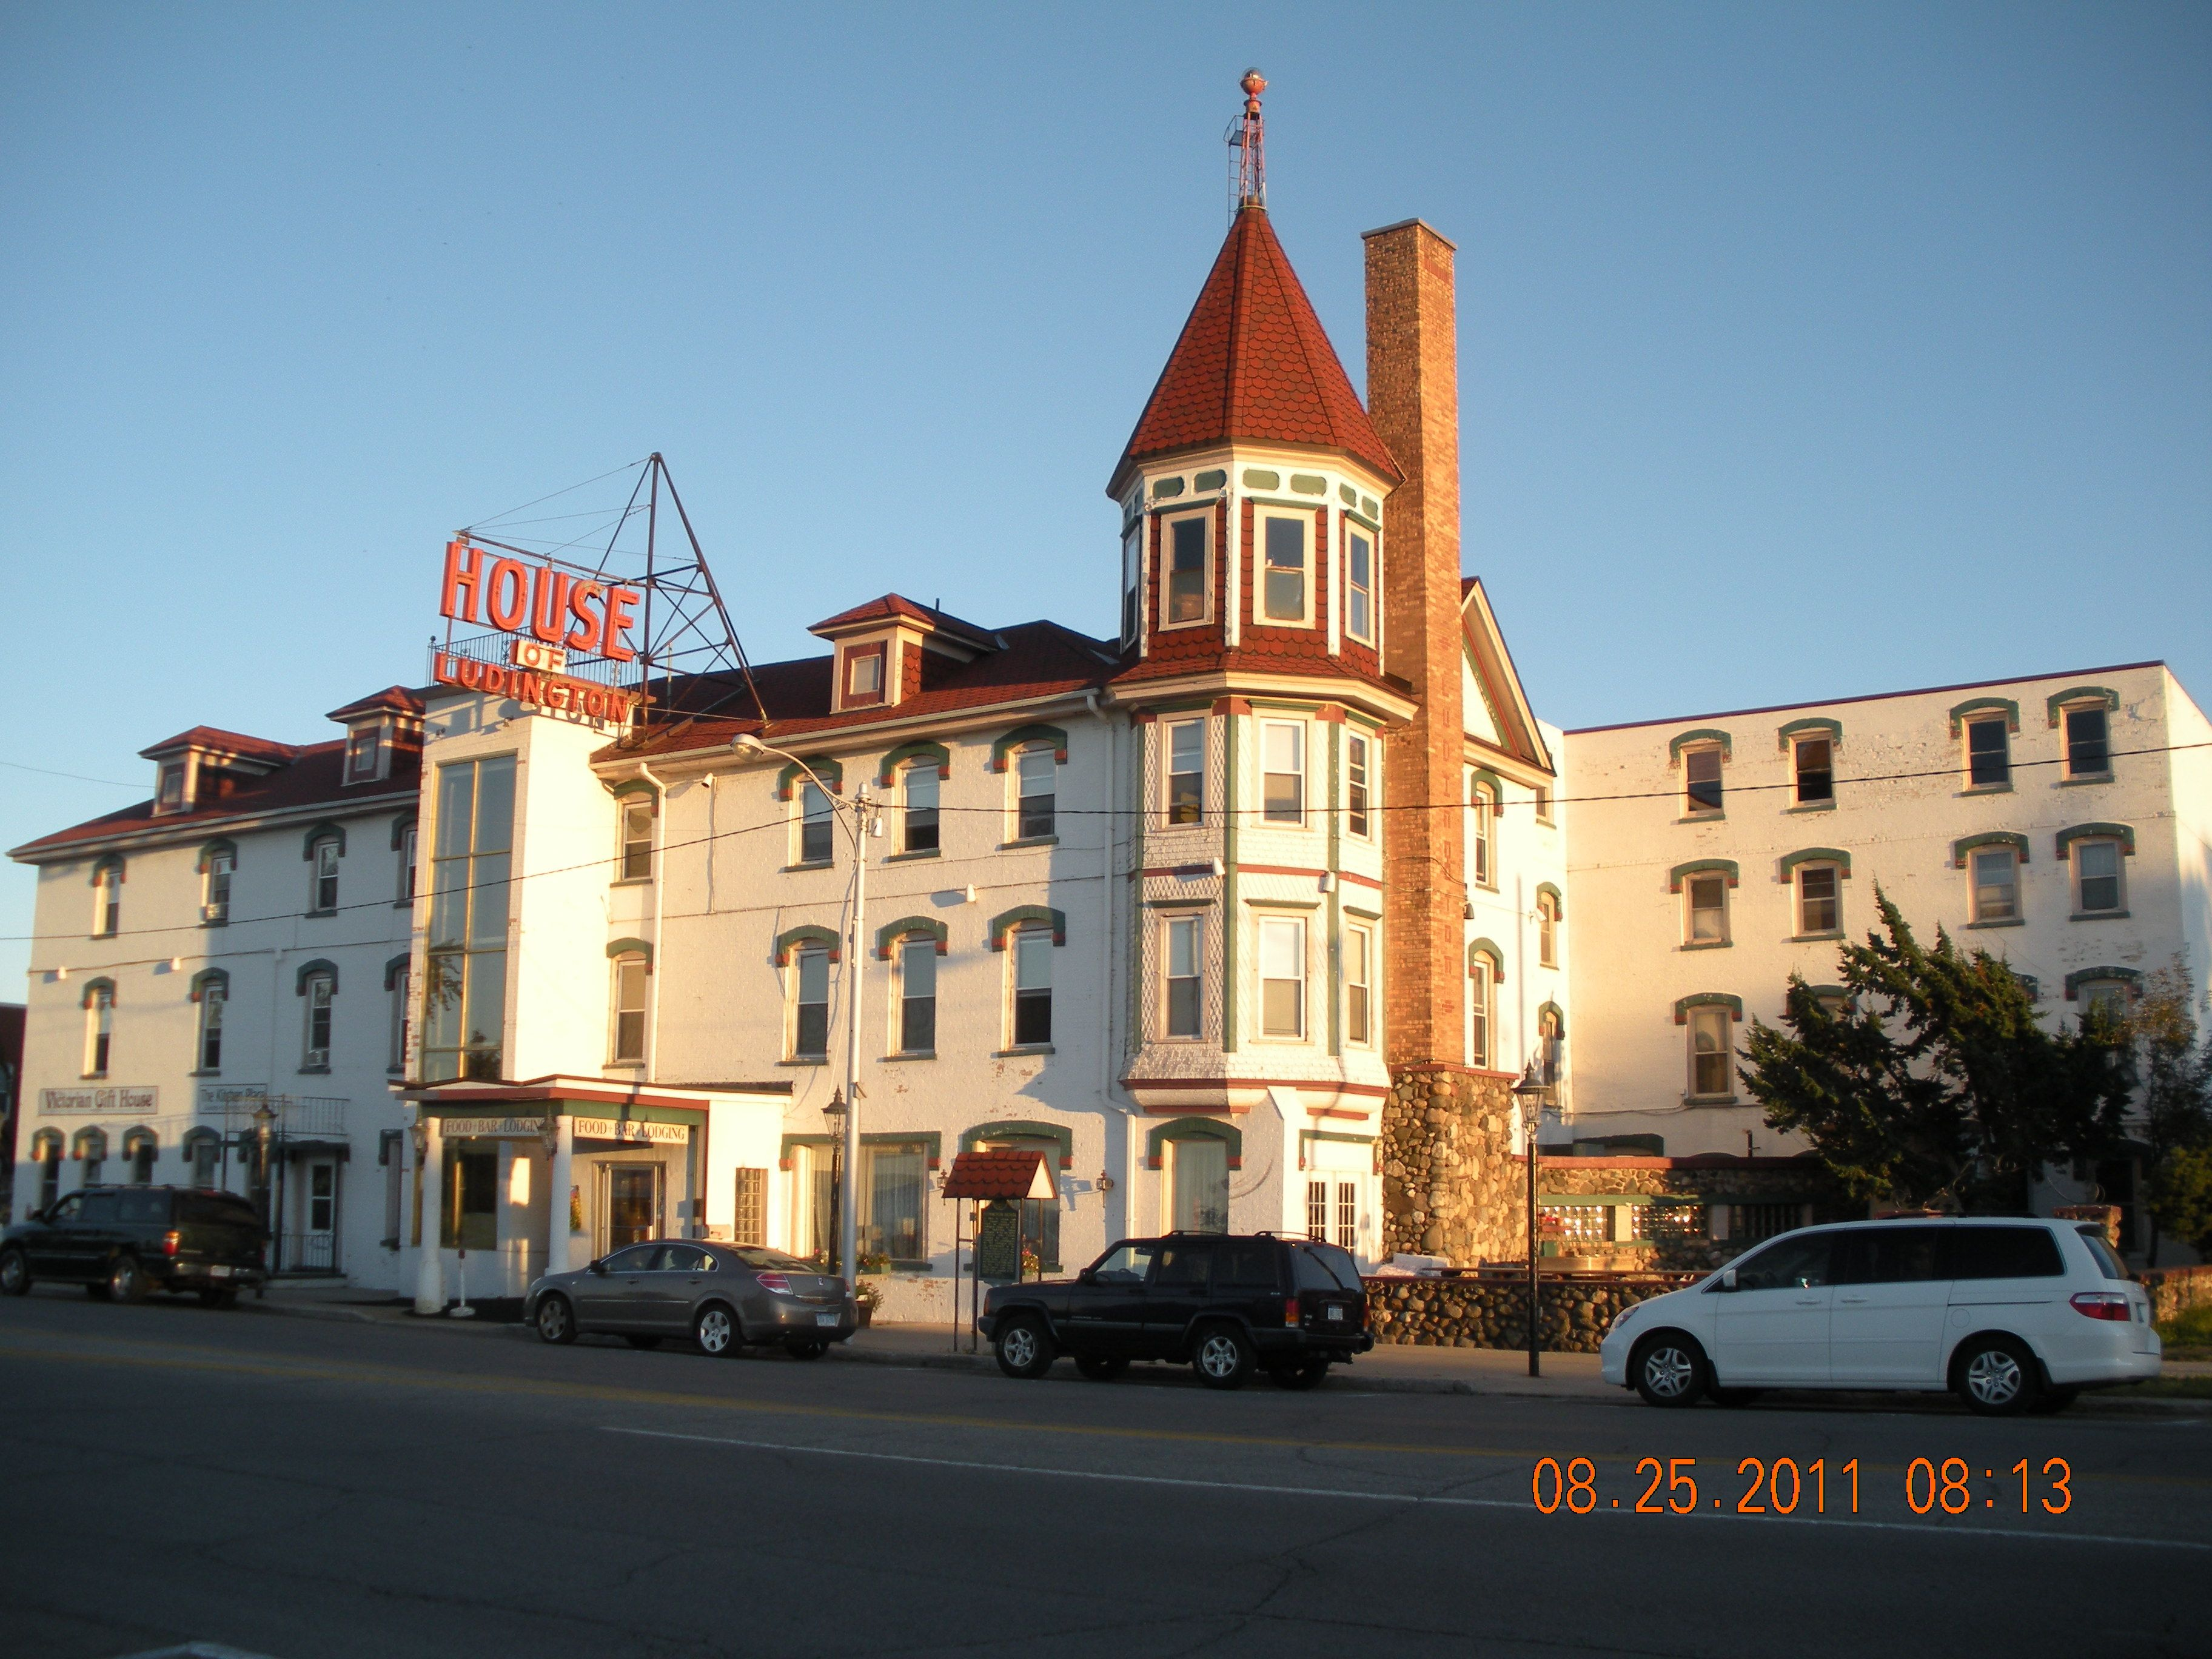 House Of Ludington Hotel In Escanaba Mi Our Home For Several Days